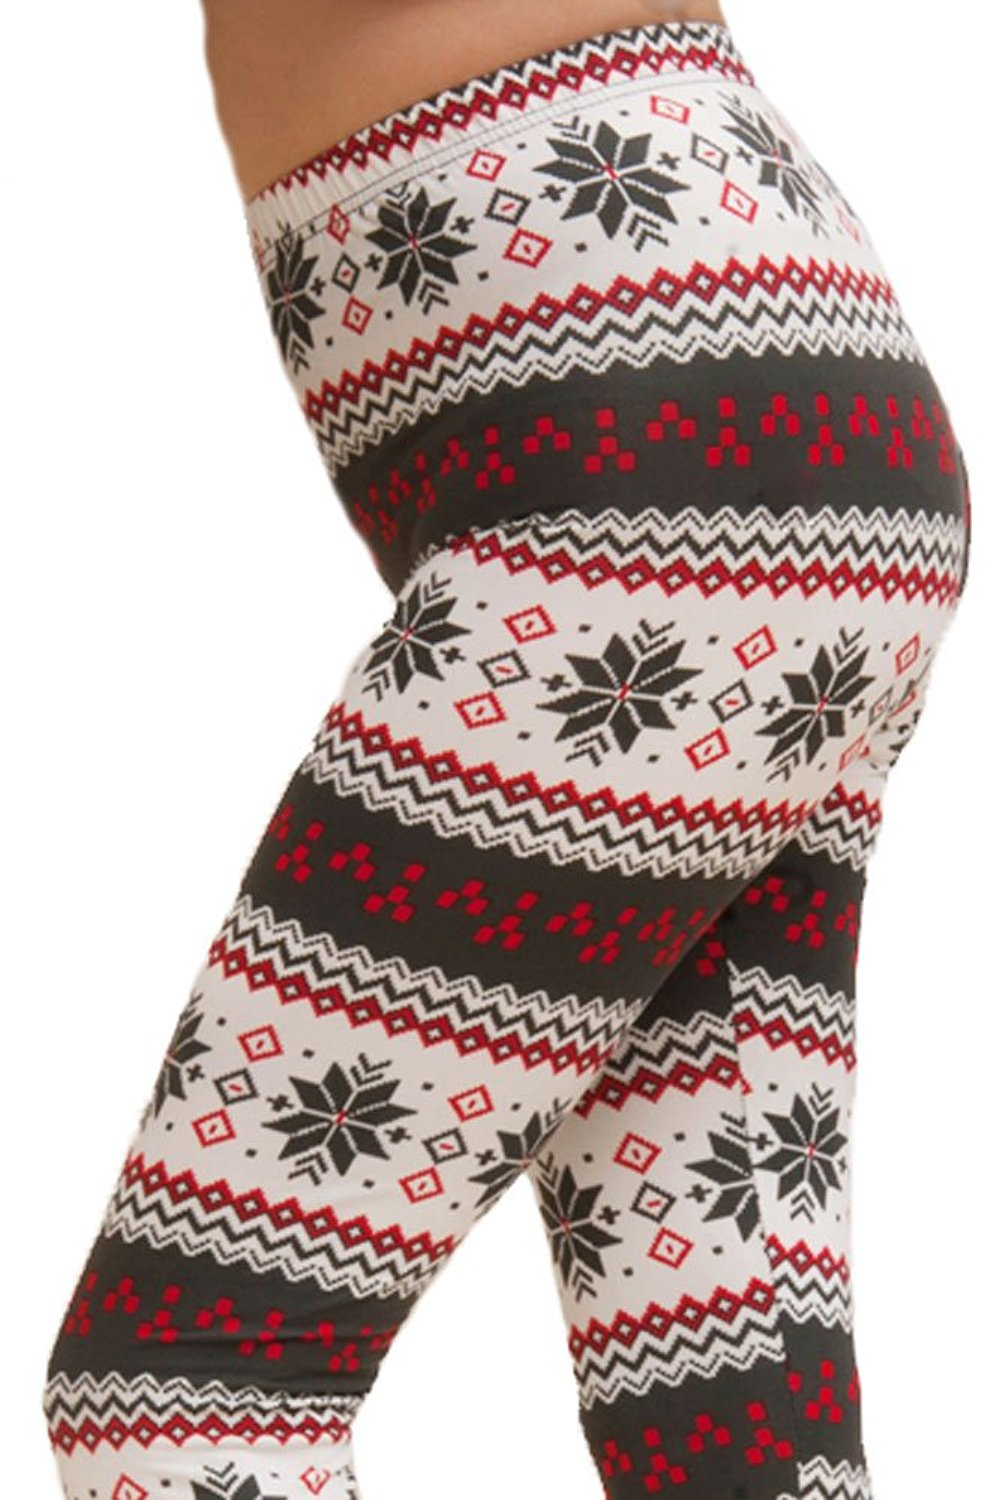 7a35d99ef88f6b Get Quotations · ED Seasonal Holiday One Size Print Leggings for Regular  Plus Girls - Reindeer Snowflake Fair Isle